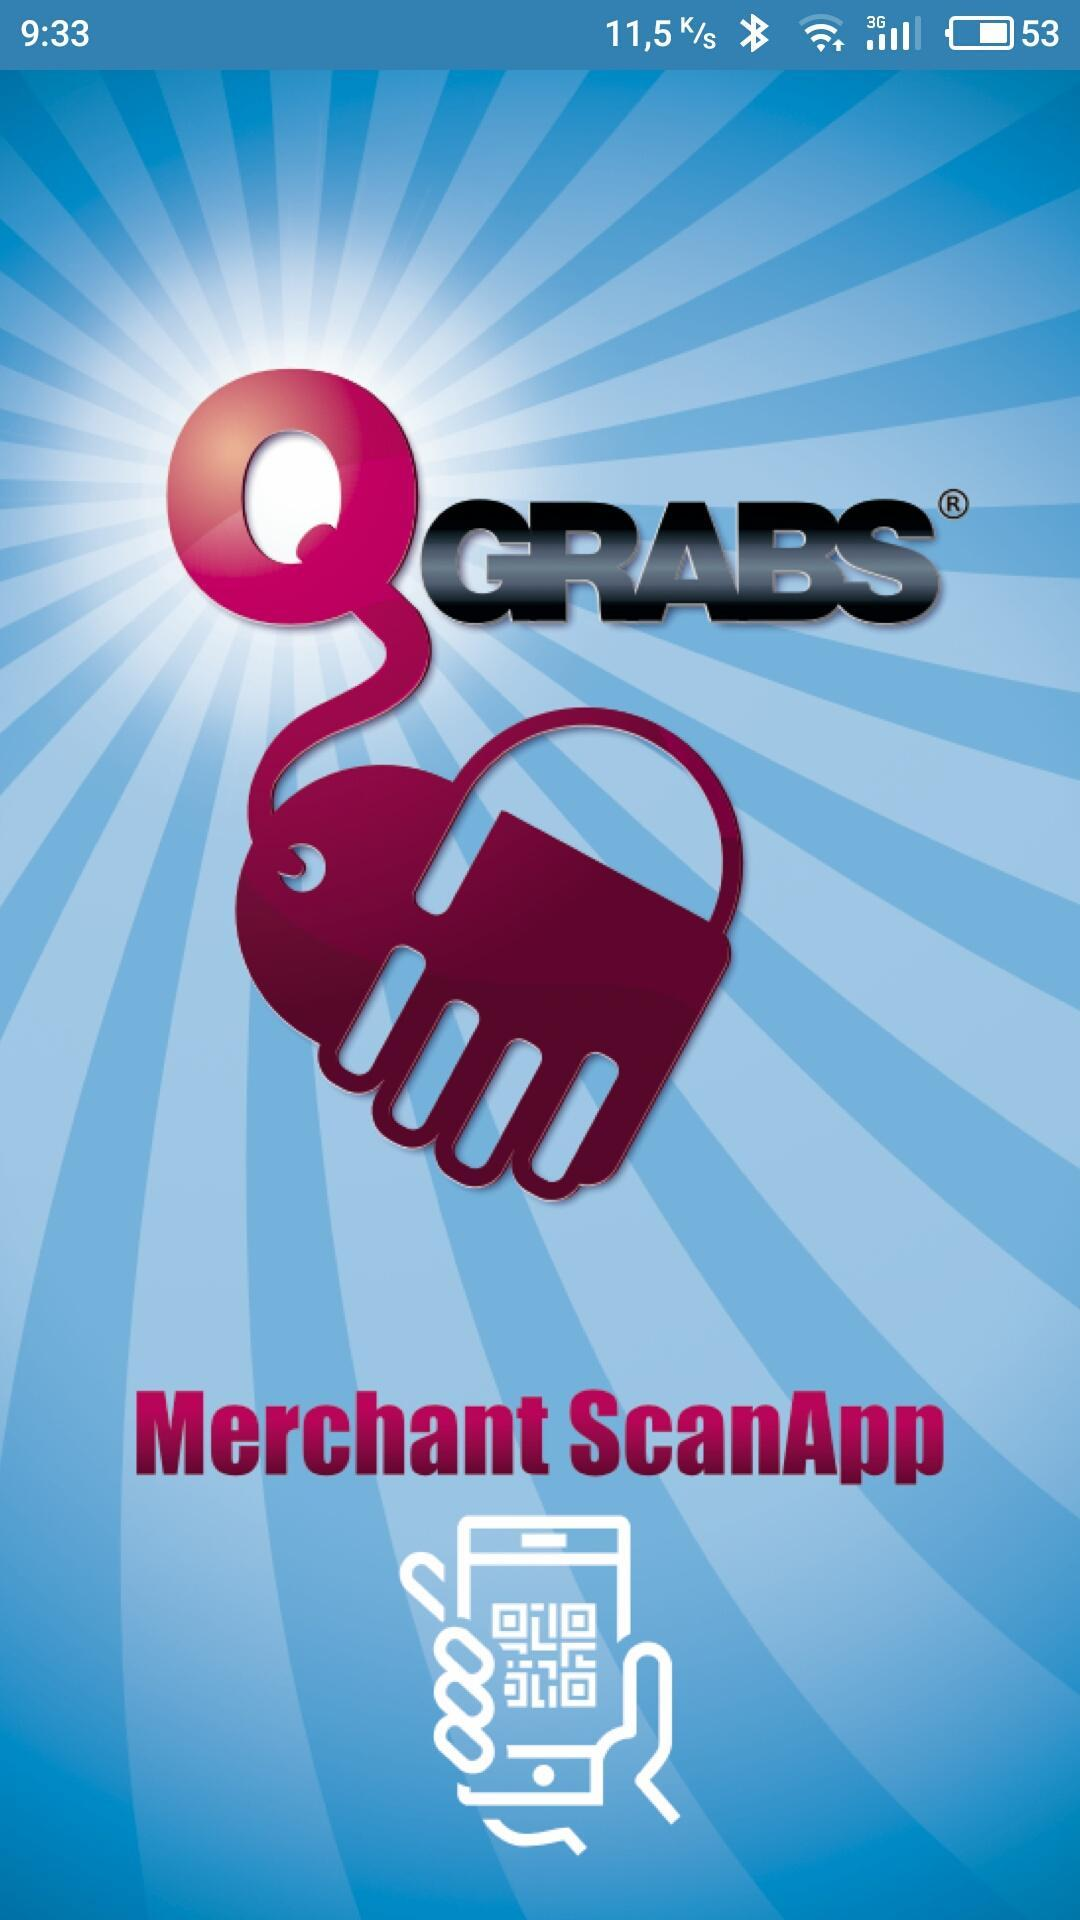 Qgrabs ScanApp for Android - APK Download